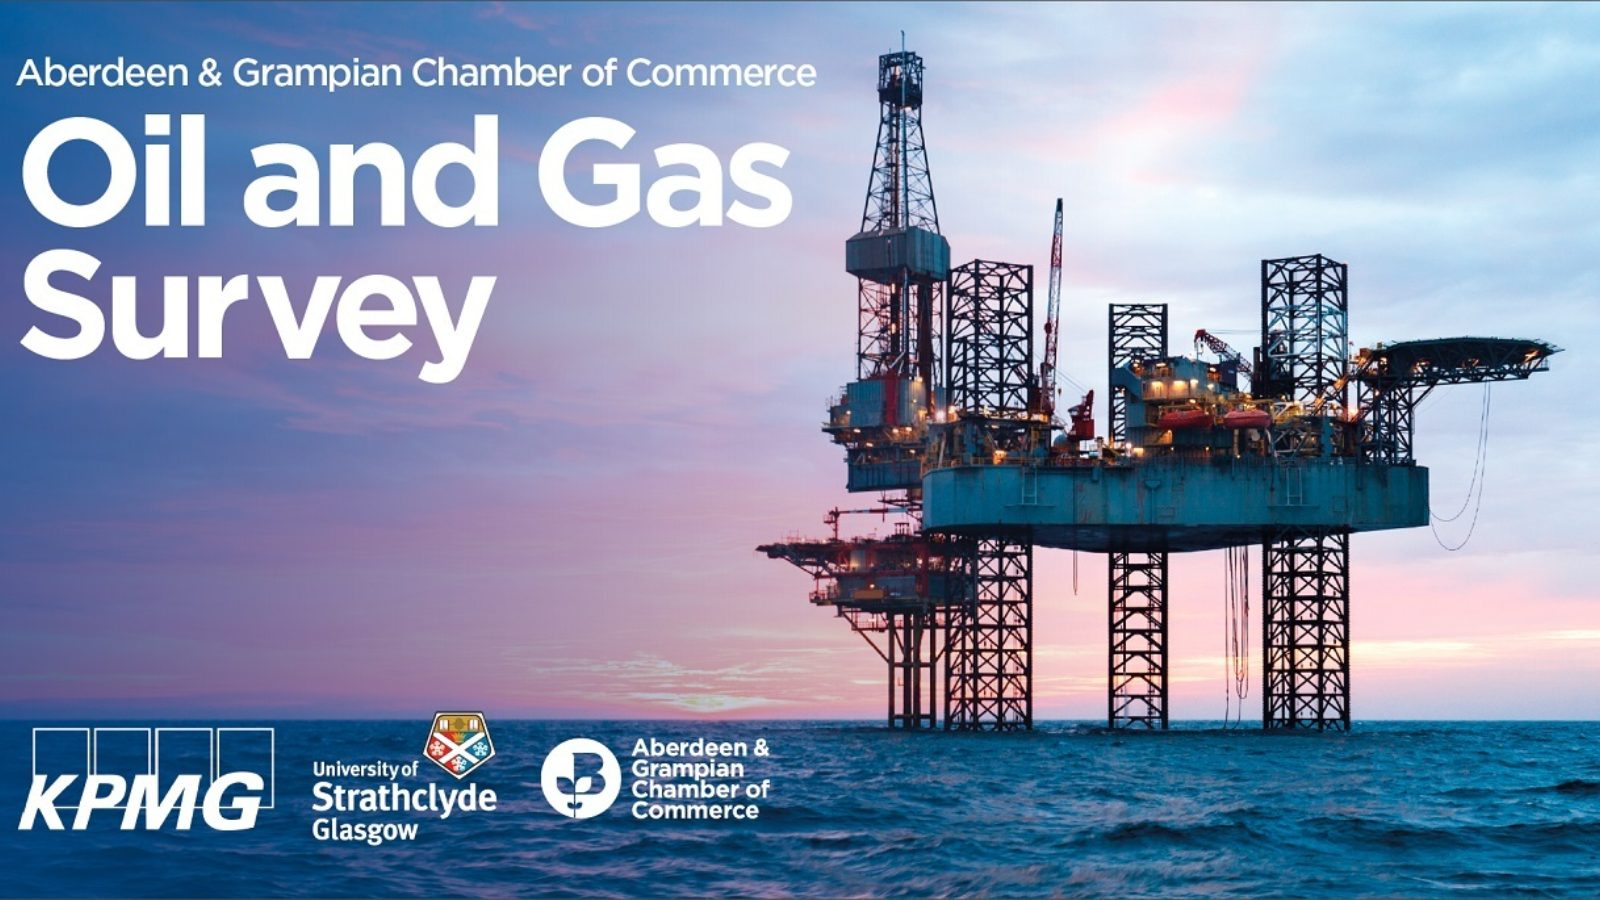 The 32nd Oil & Gas Survey is now closed. Thank you for helping us to capture valuable data and insight, the results will be posted here in due course.